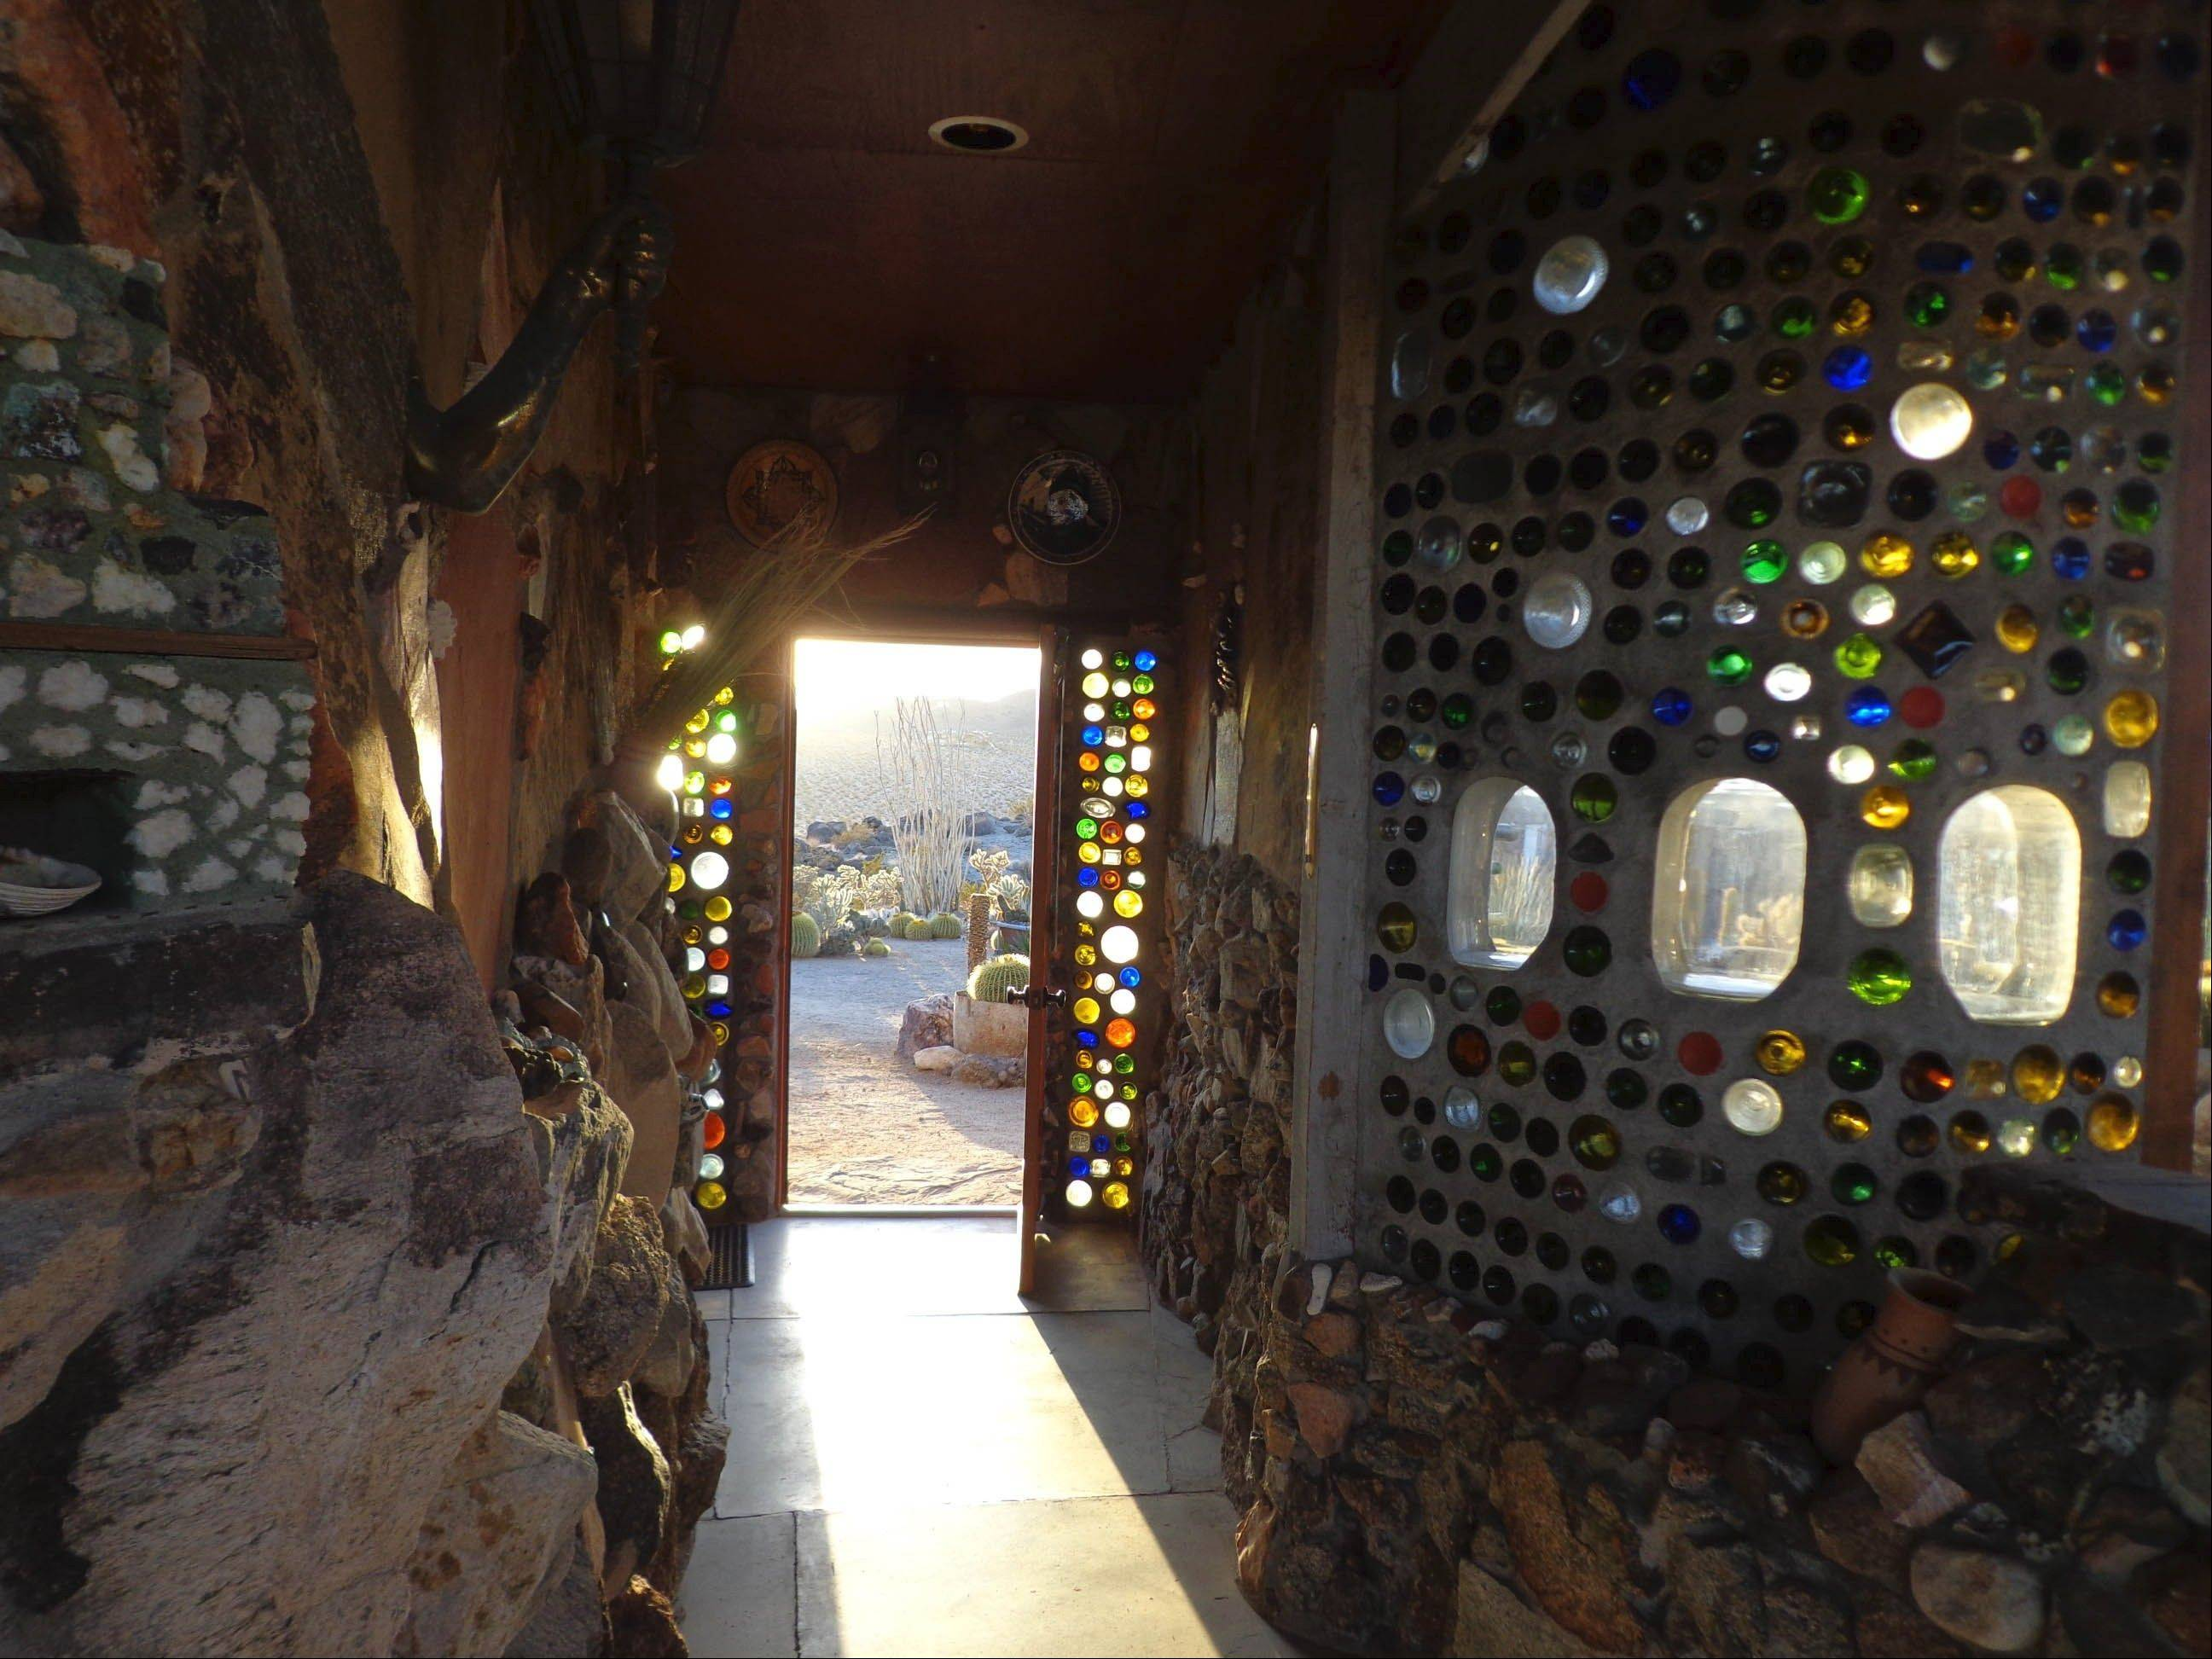 The bottles facing the west wall light up on cue at sunset every day.